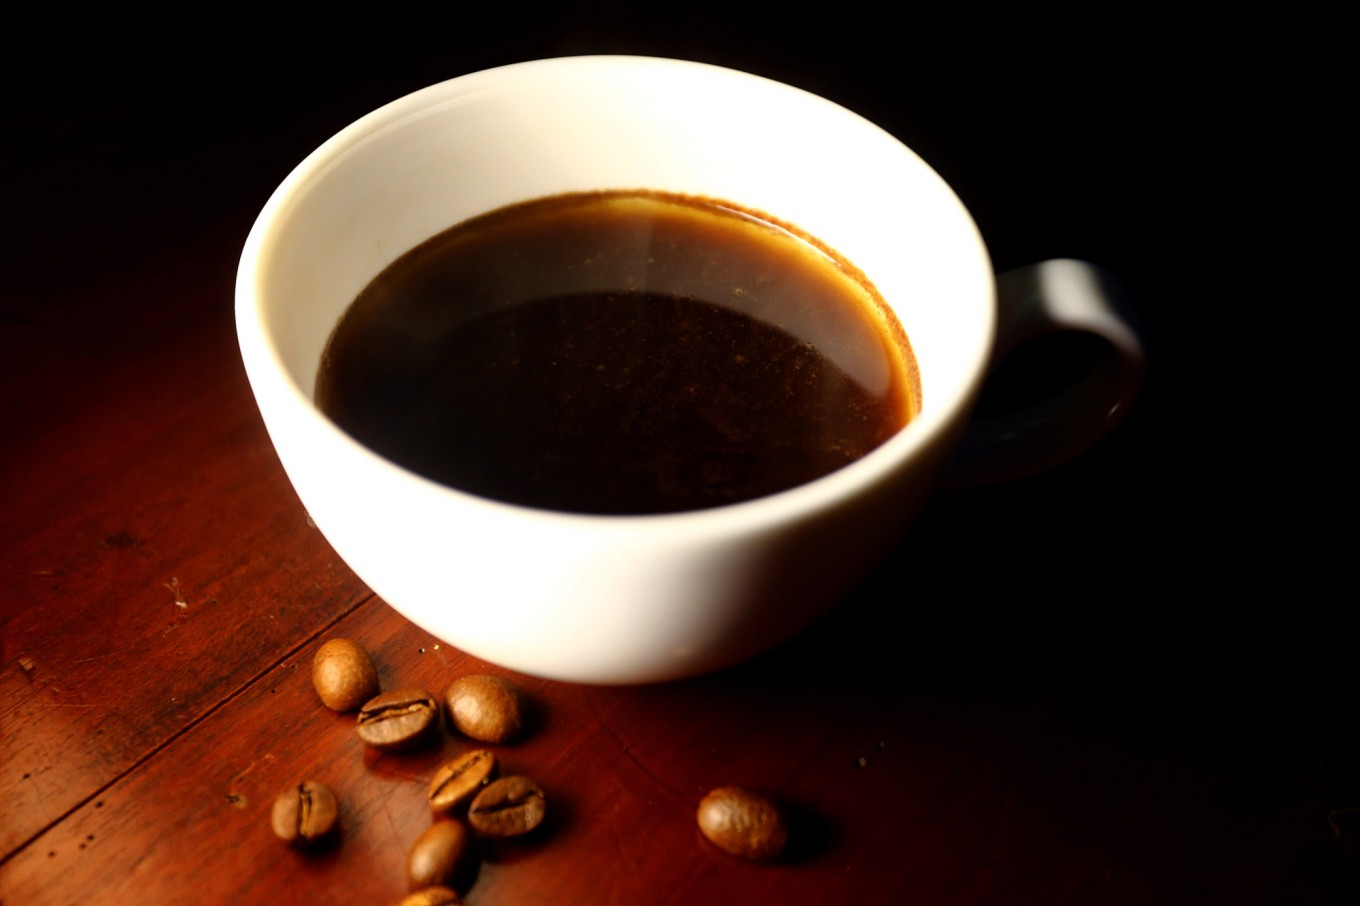 Association foresees greater local coffee consumption this year